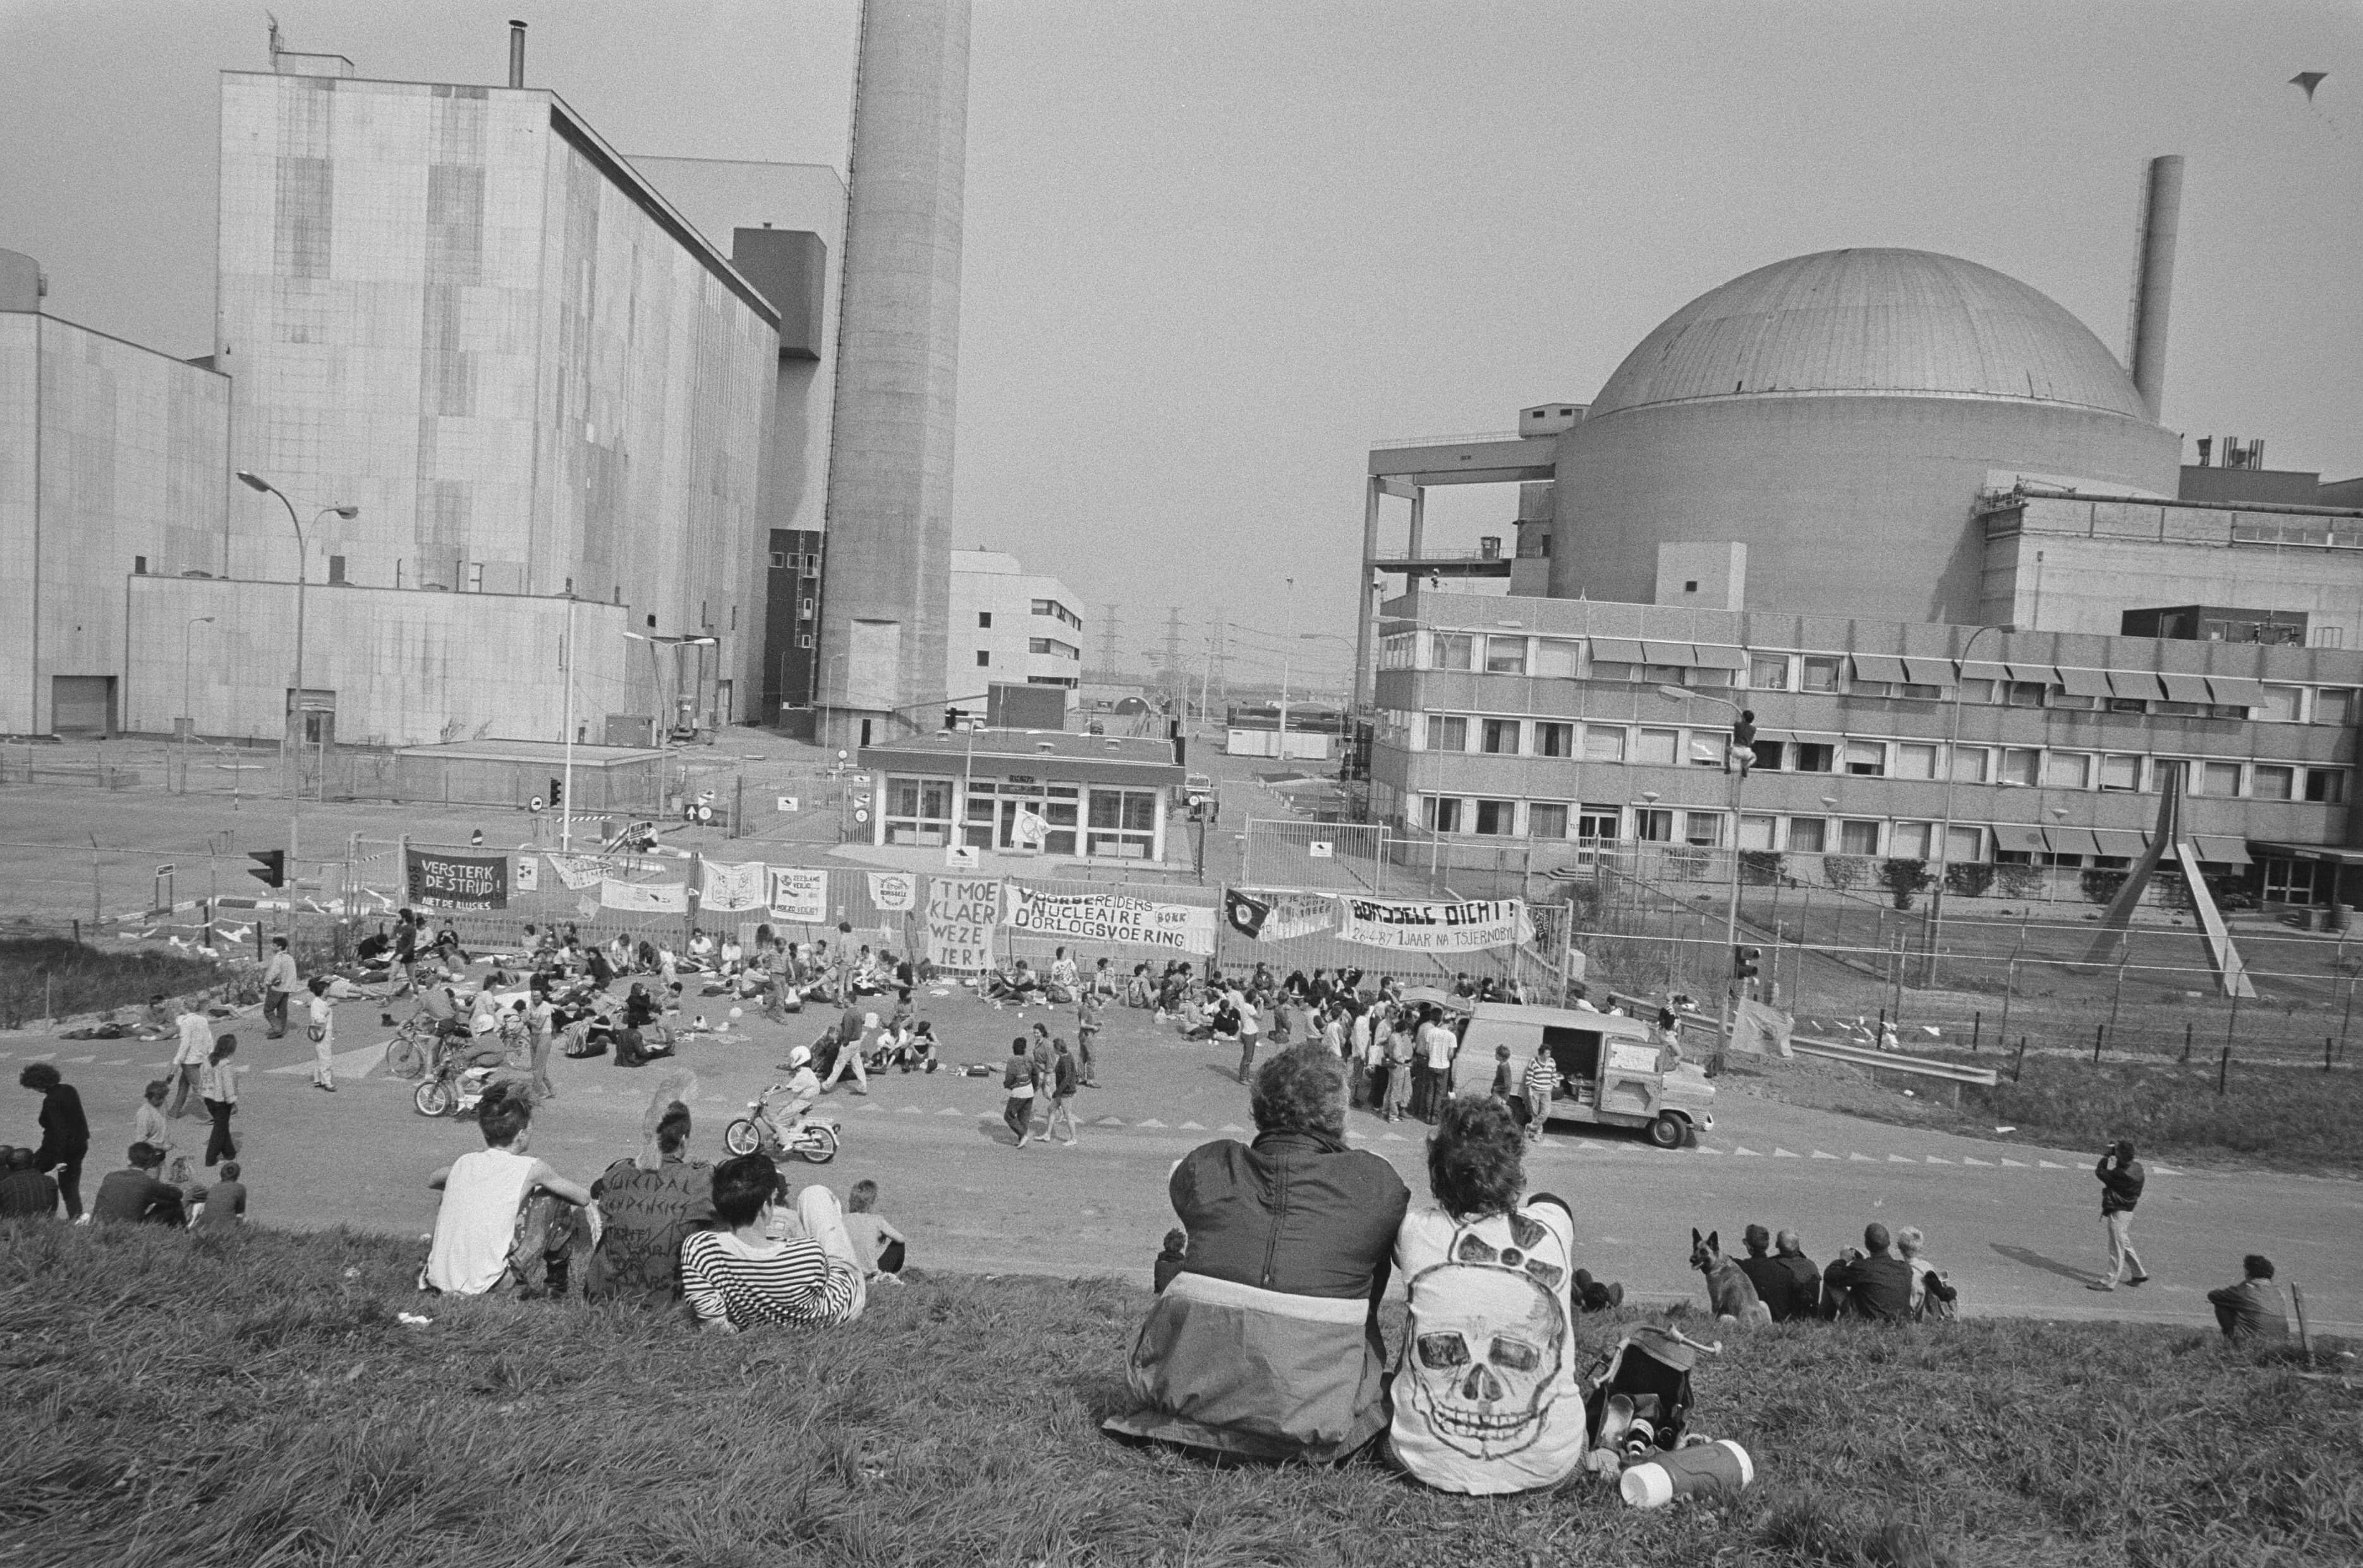 Protest at the nuclear power plant in Borselle, 1987. © Nationaal Archief